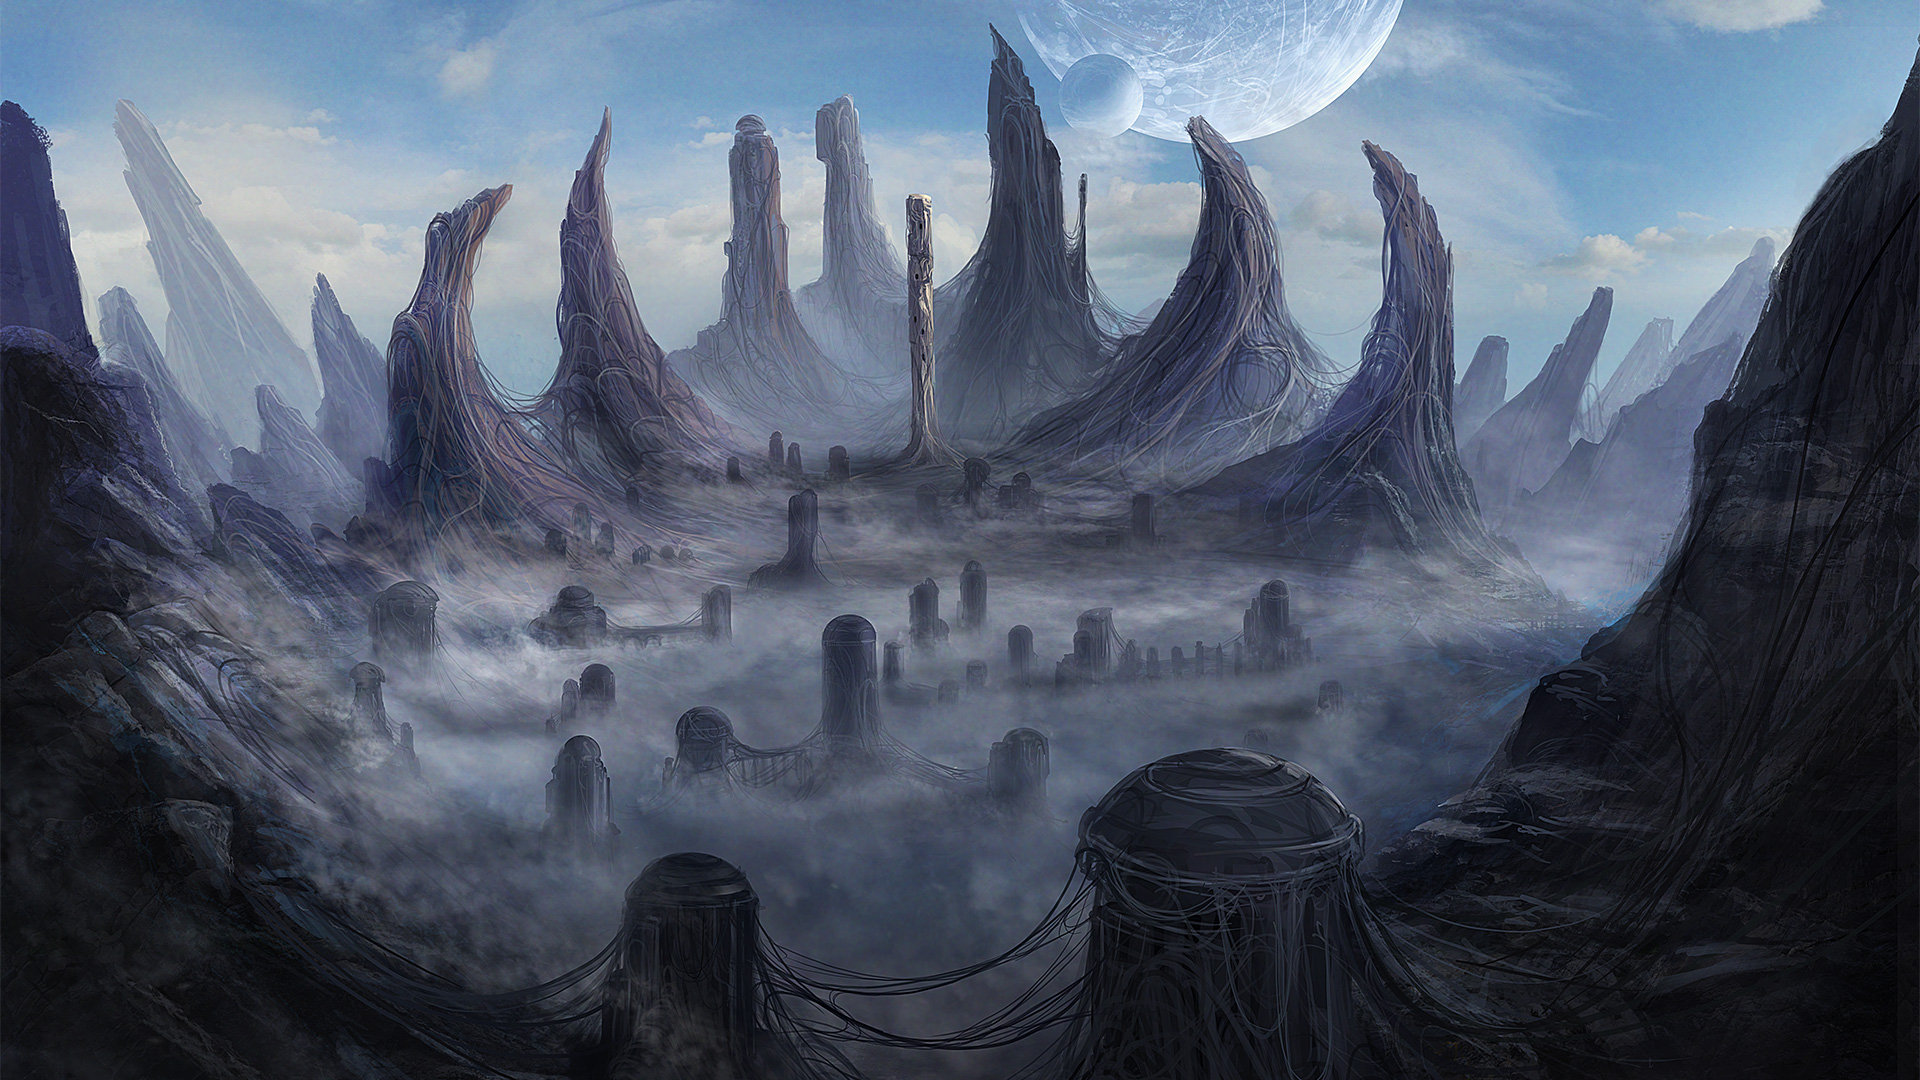 Another World: Alien city mattepainting by Mac Rebisz. Click for source.